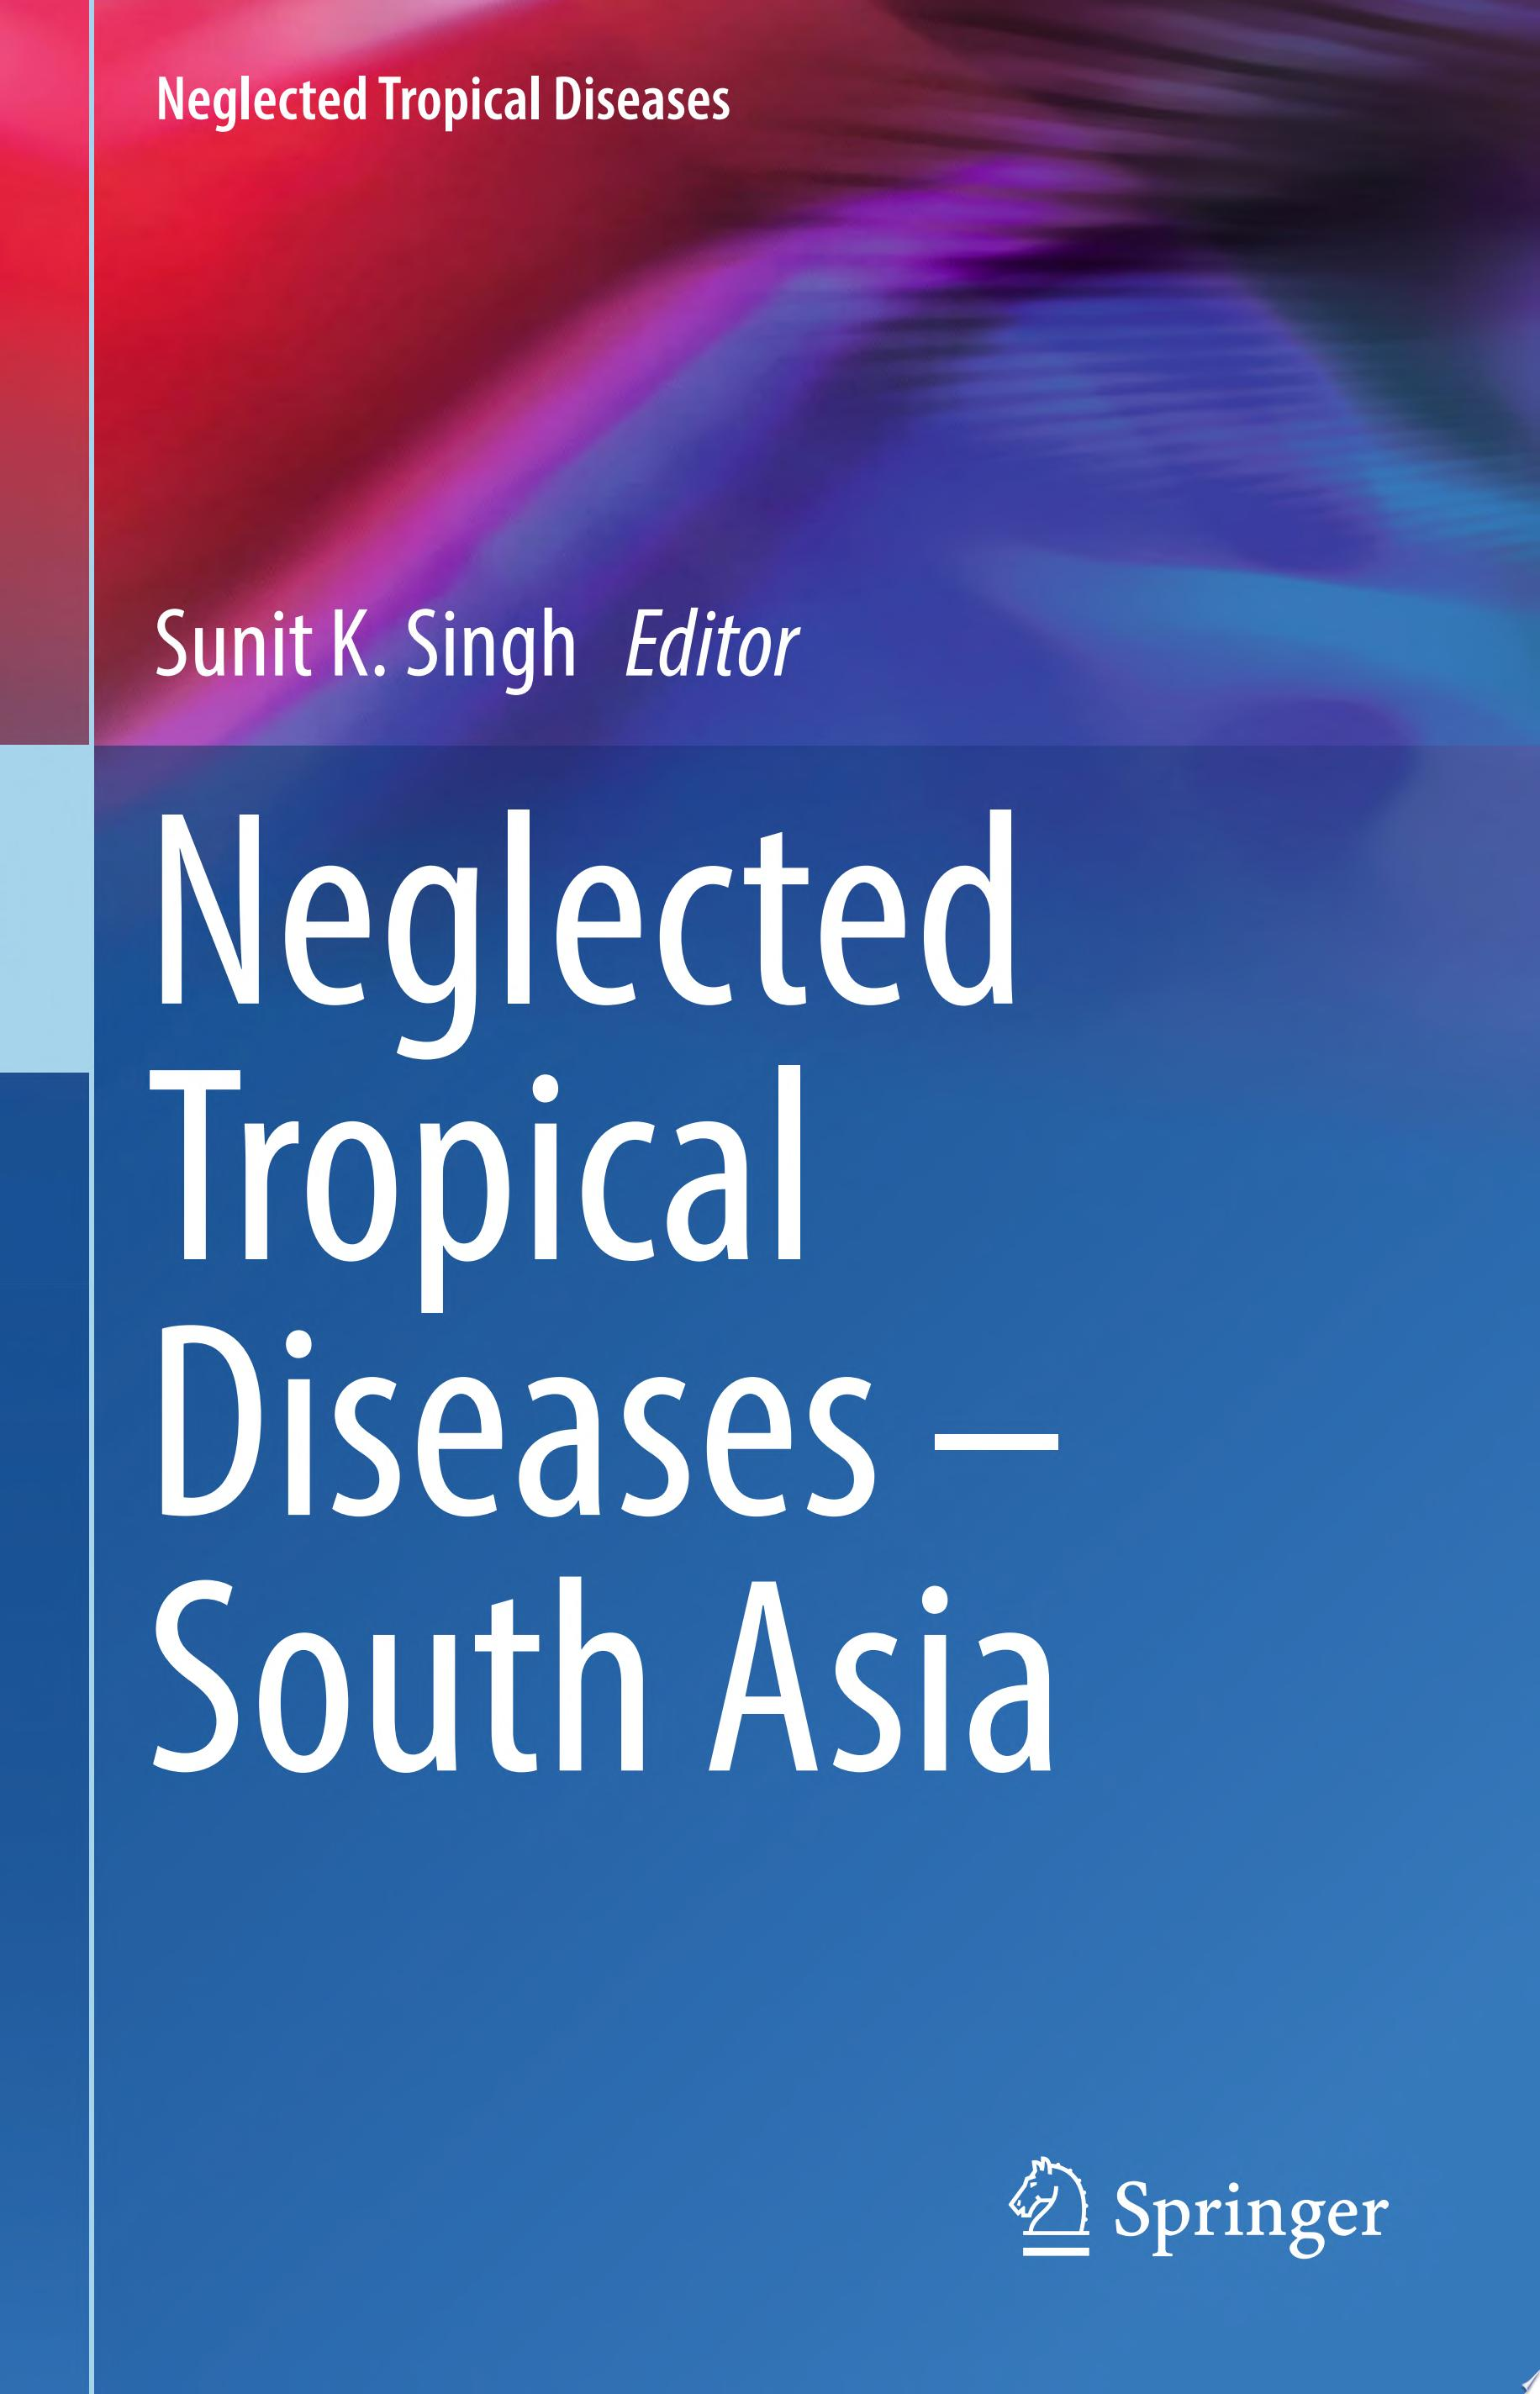 Neglected Tropical Diseases   South Asia